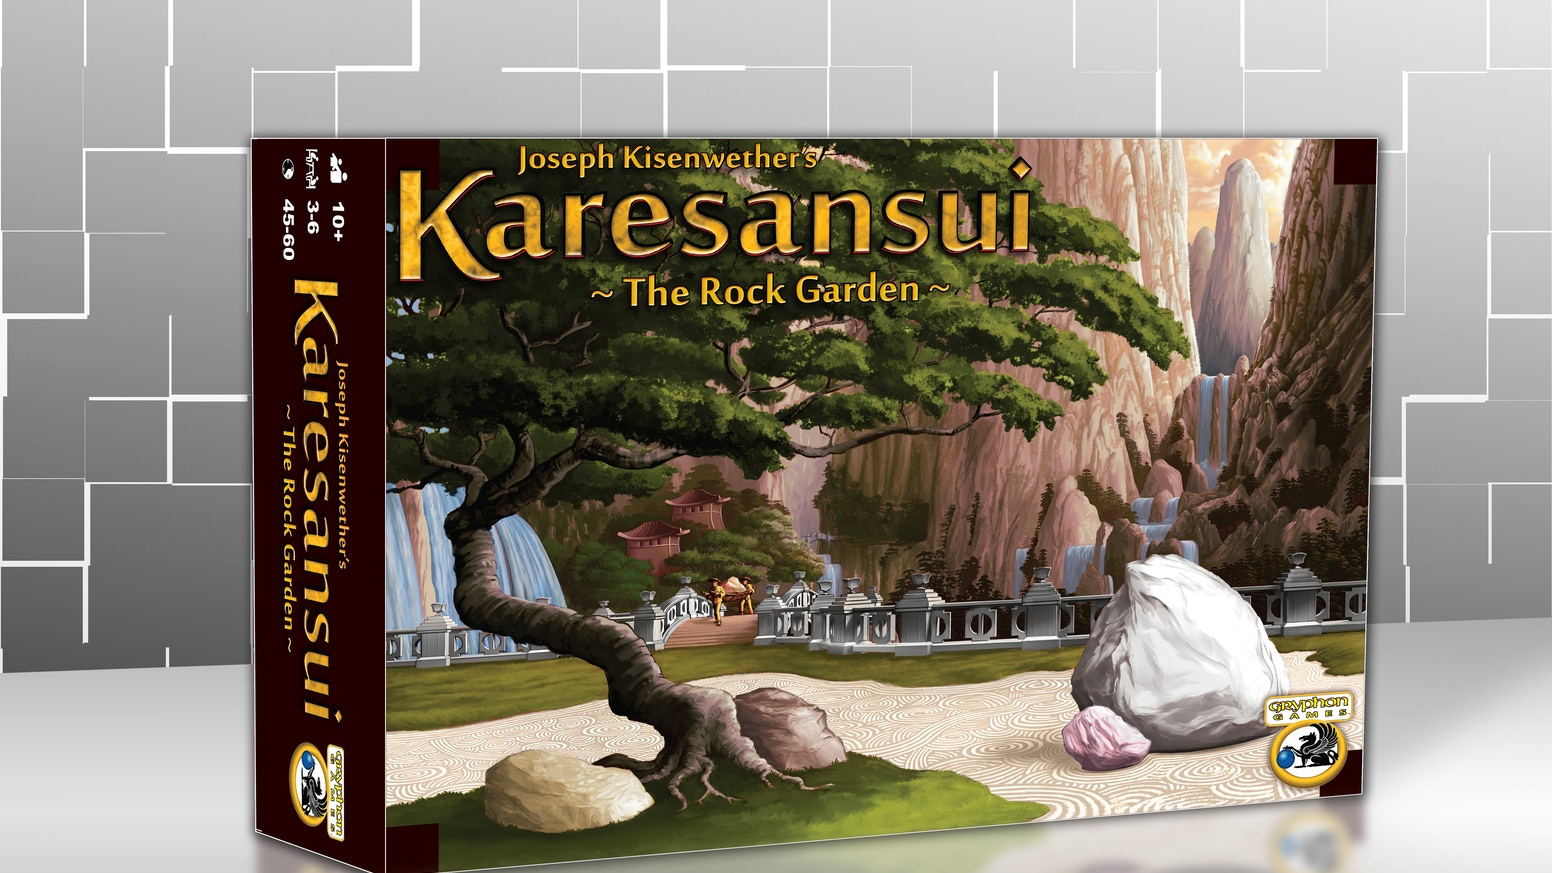 Karesansui (Rock Gardens) imitate the essence of nature, and serve as an aid to meditation about the true meaning of life.